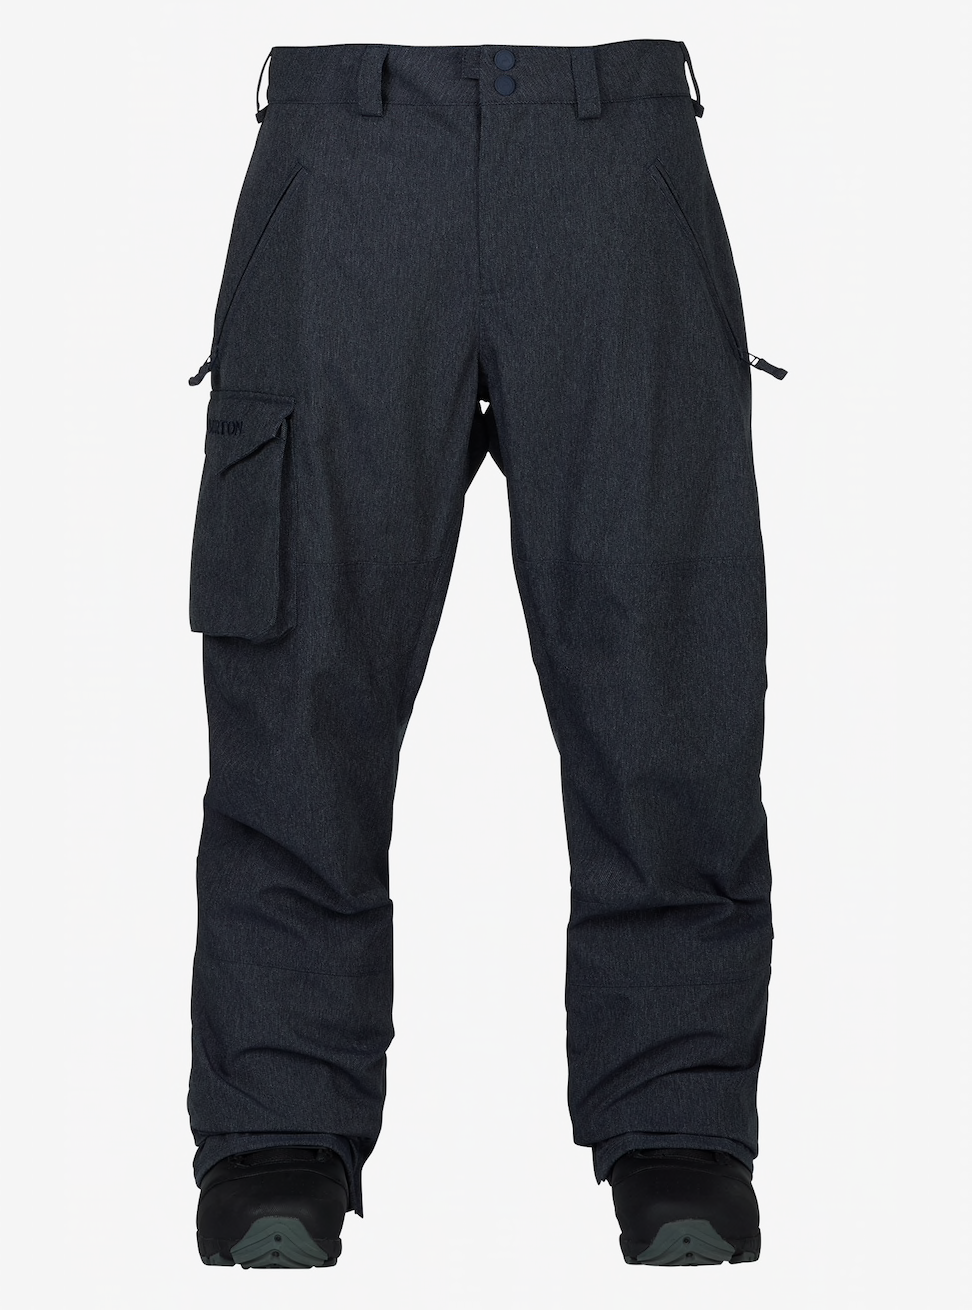 2019 Burton Covert Pant - Denim